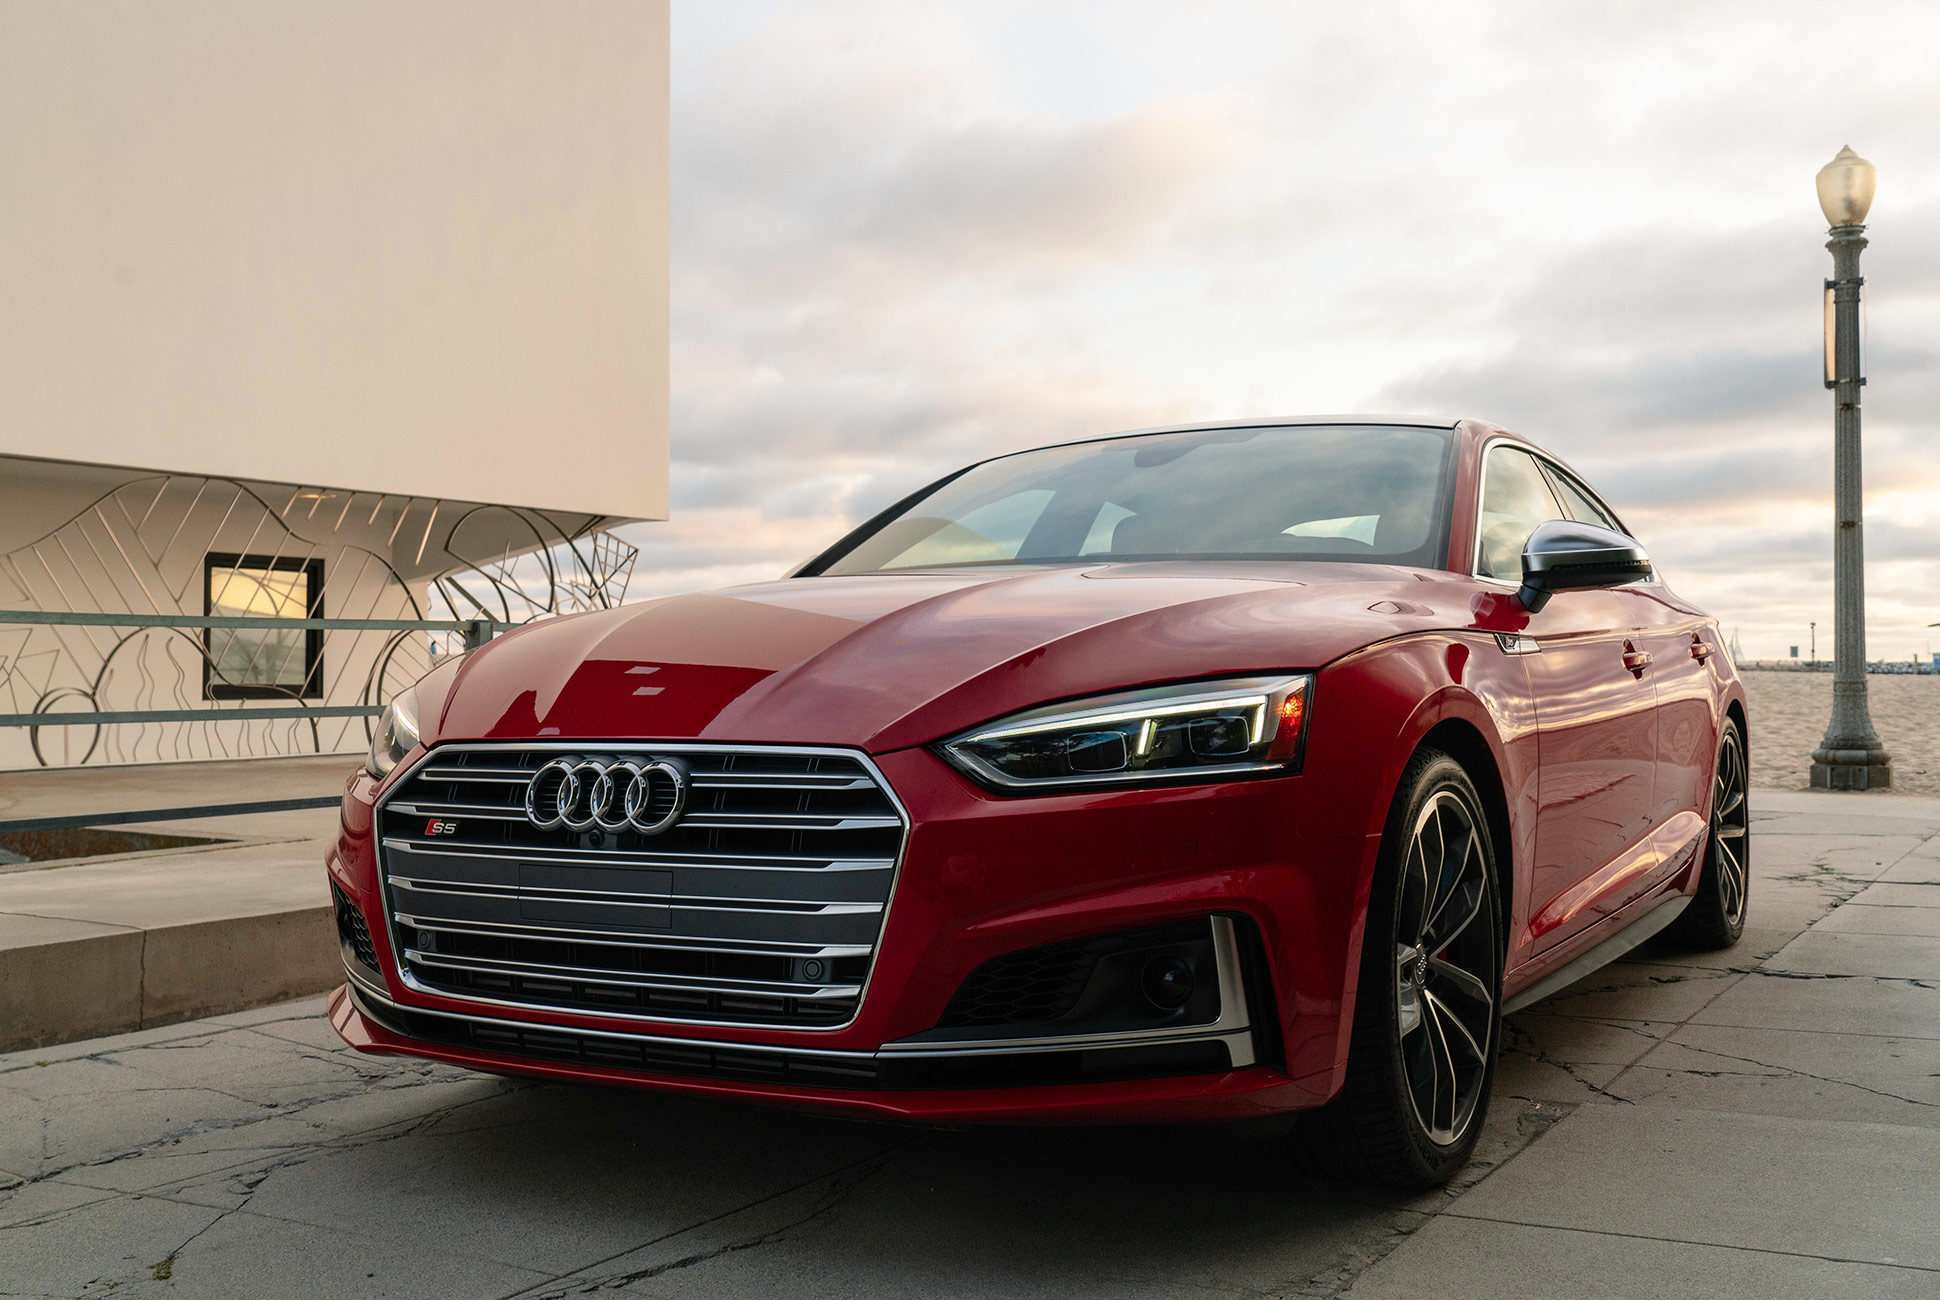 80 The Best 2019 Audi A5s Speed Test